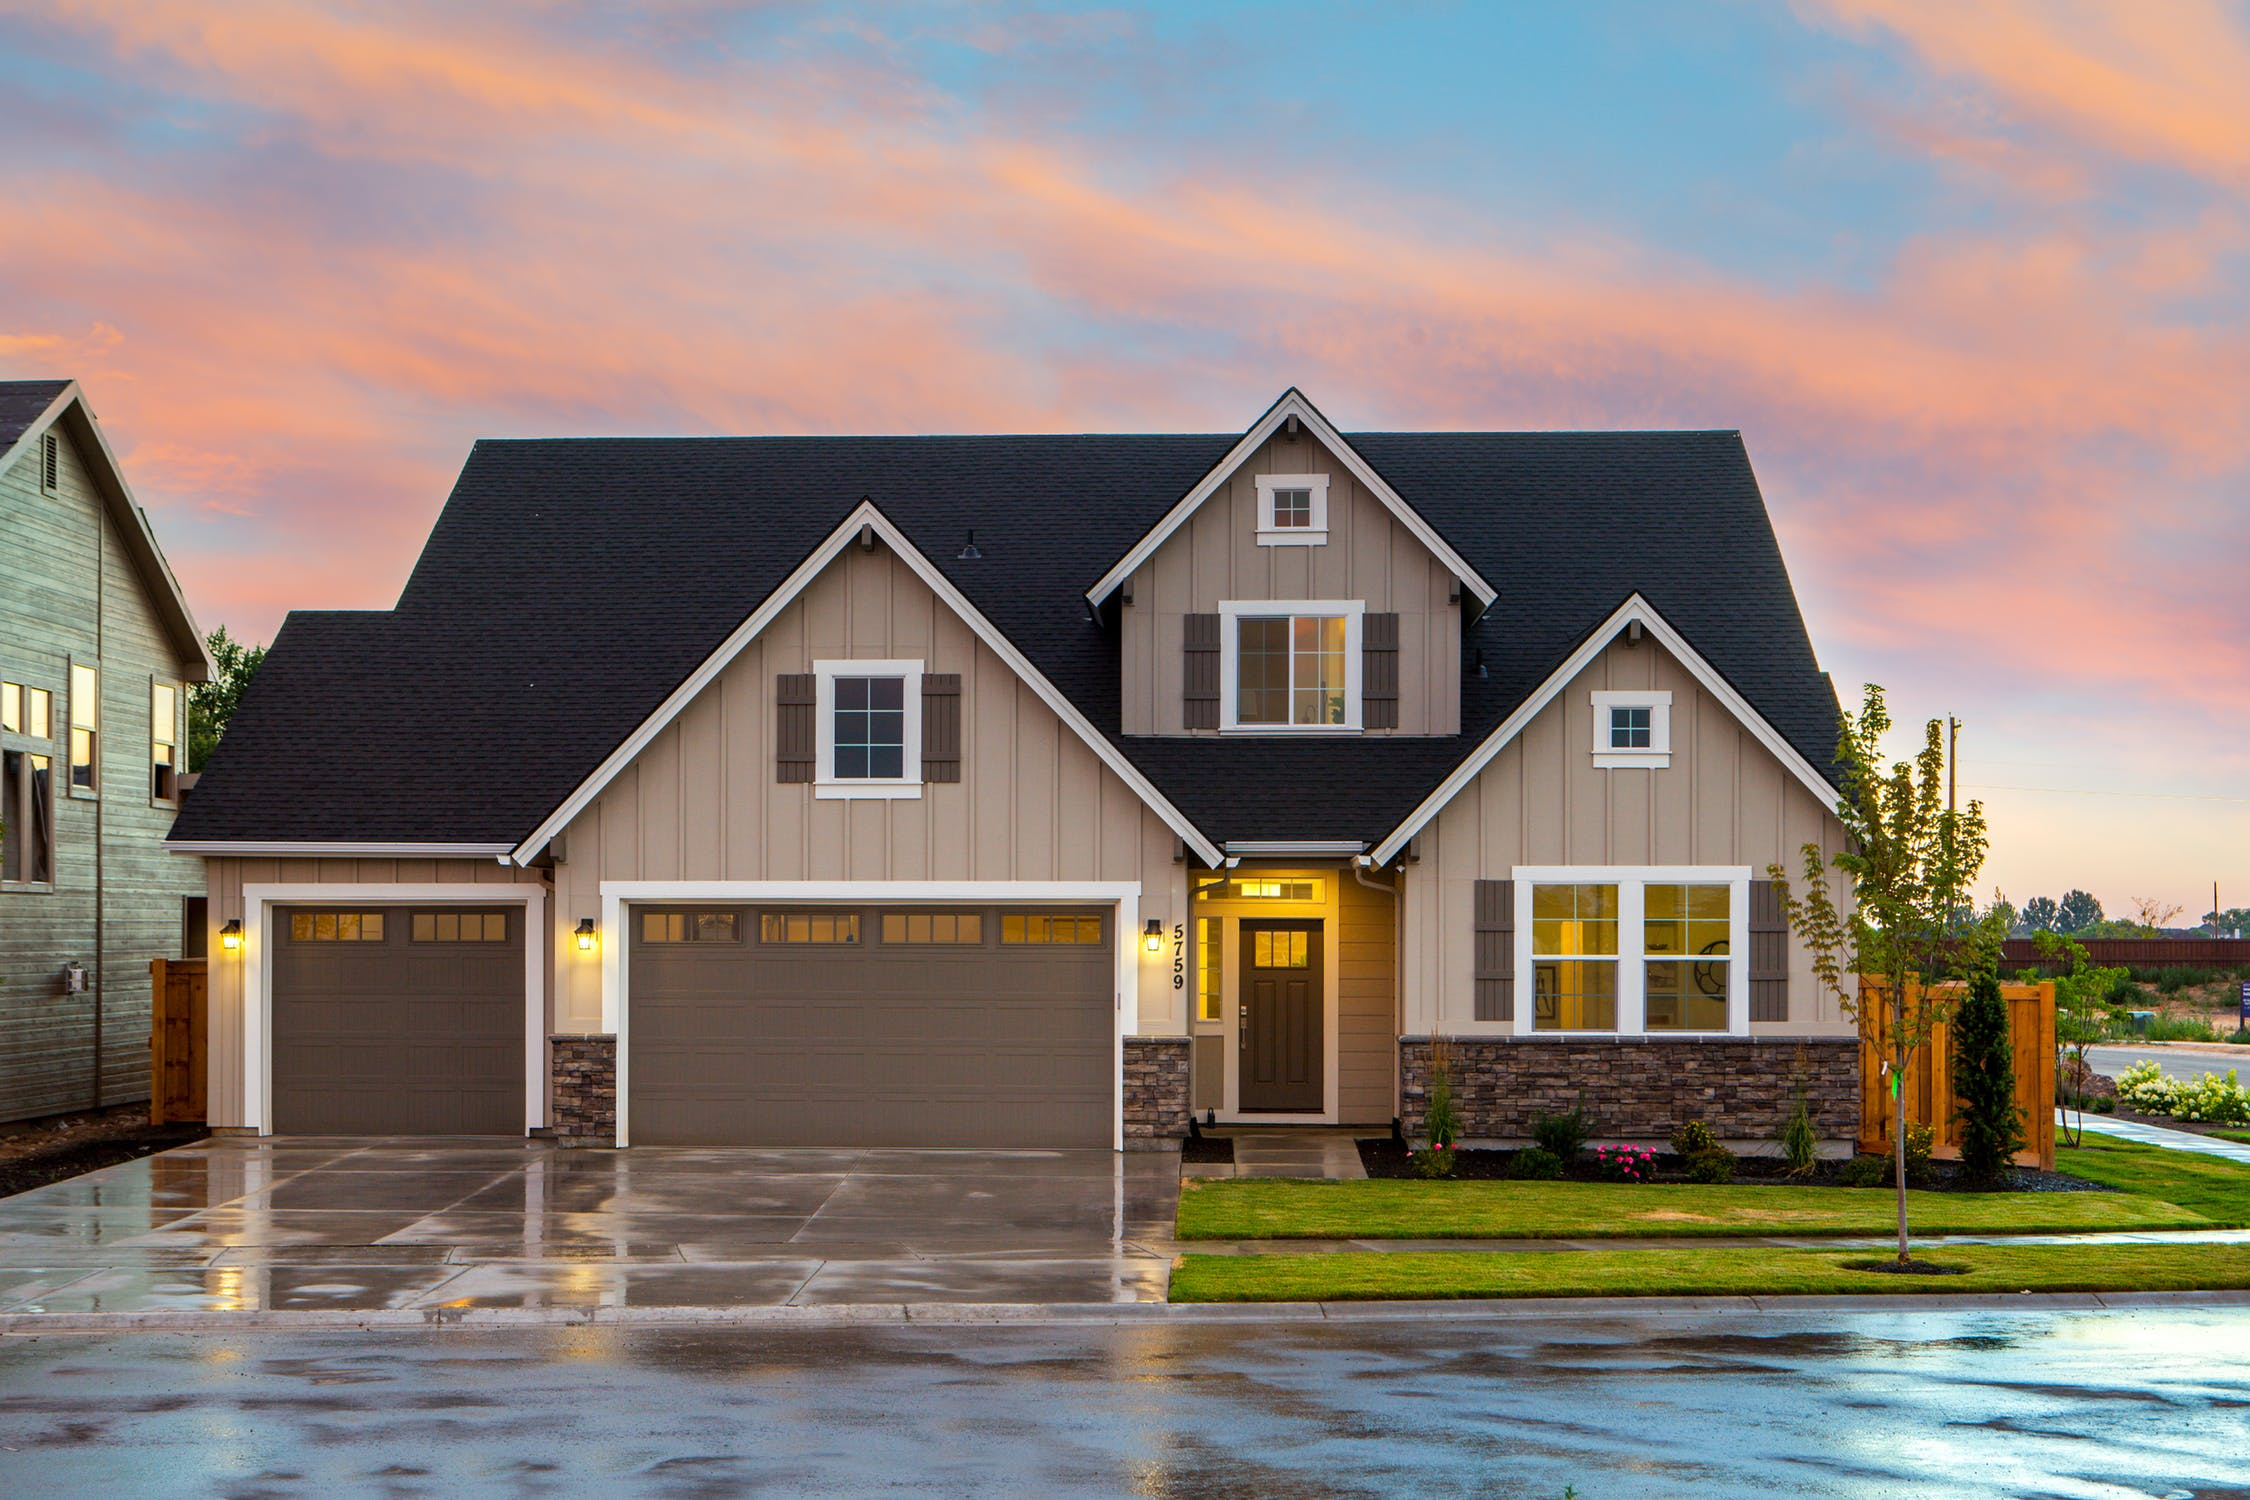 Securing Your Home With A High Quality Garage Door